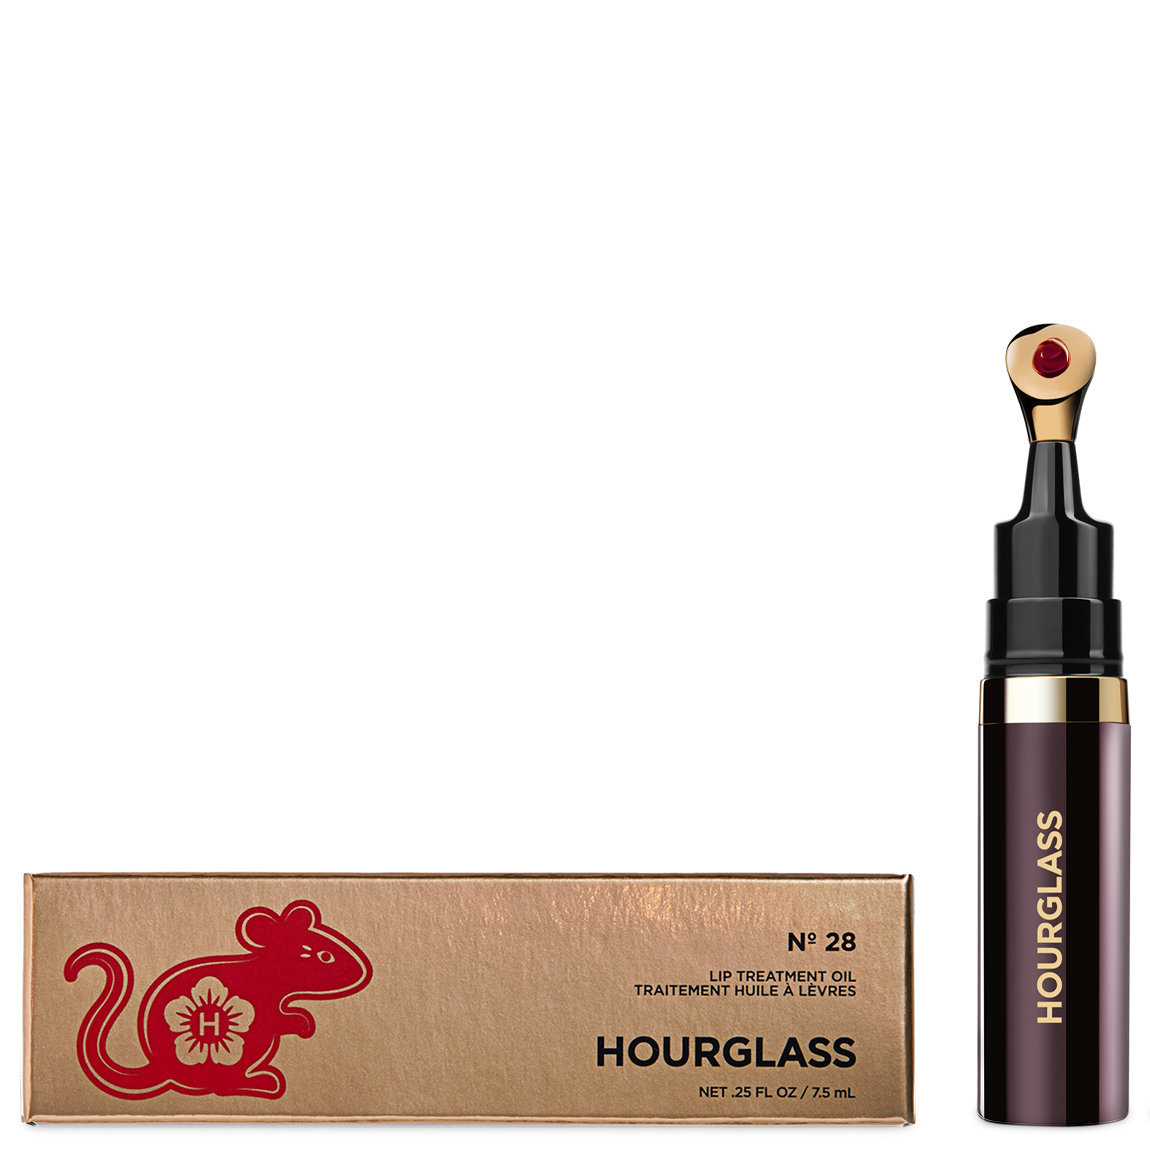 Hourglass Limited Edition Nº 28 Lip Treatment Oil product swatch.